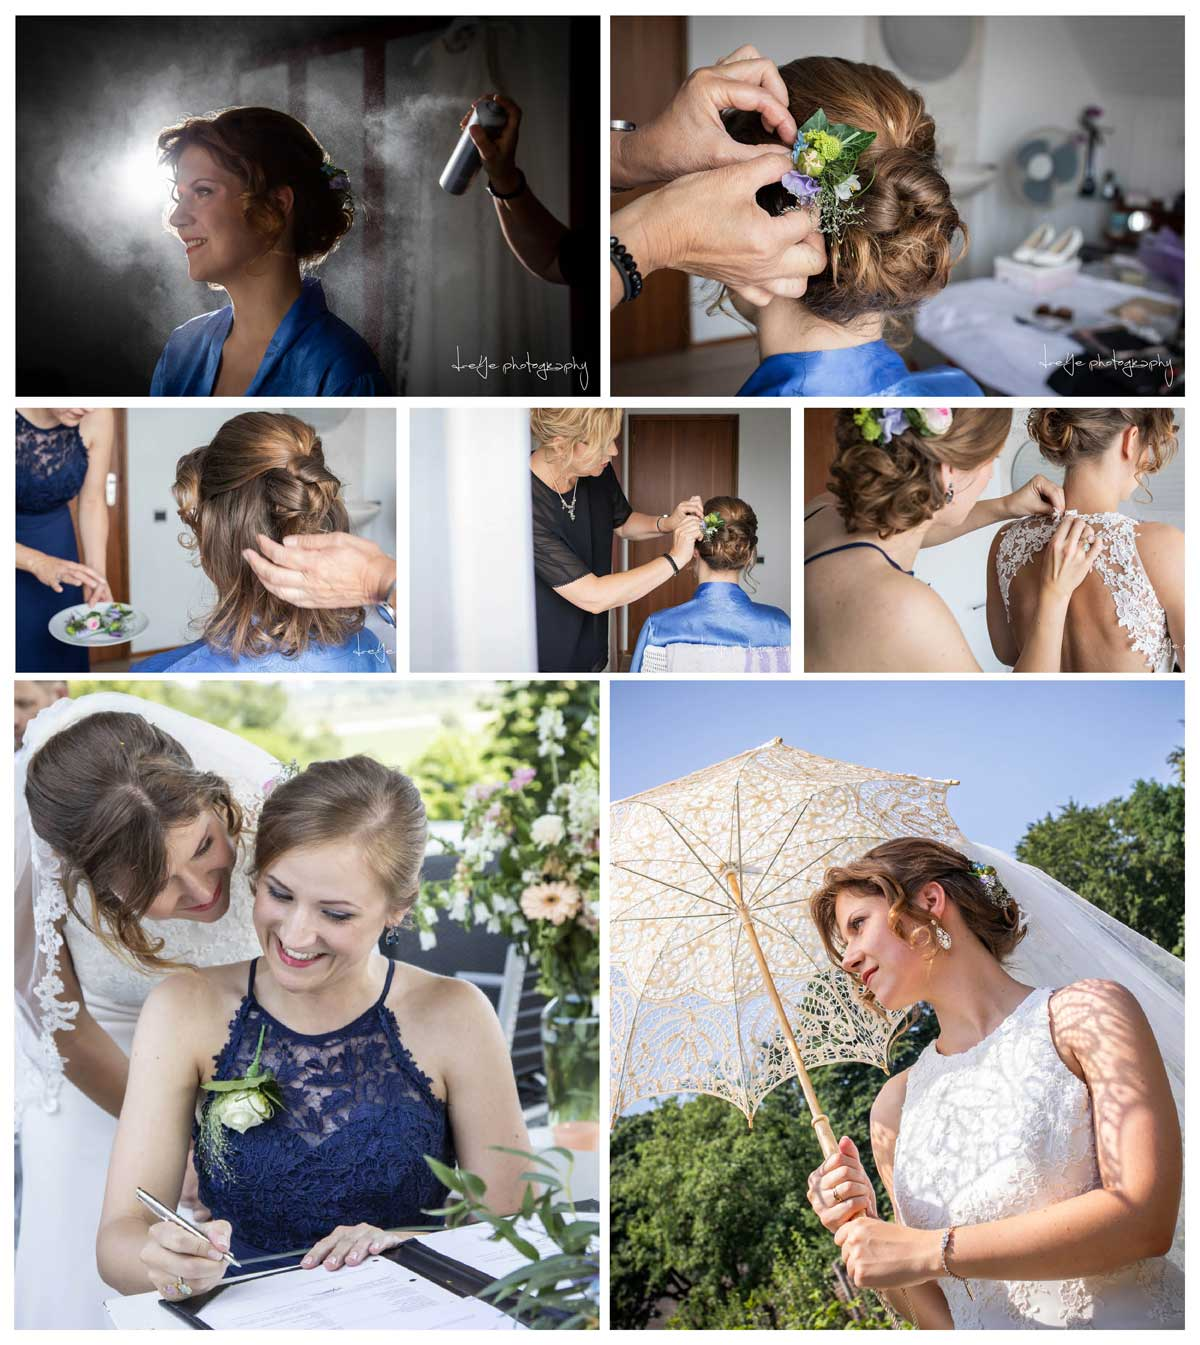 3.MM Visagie Hairstyling fotograaf d eYe